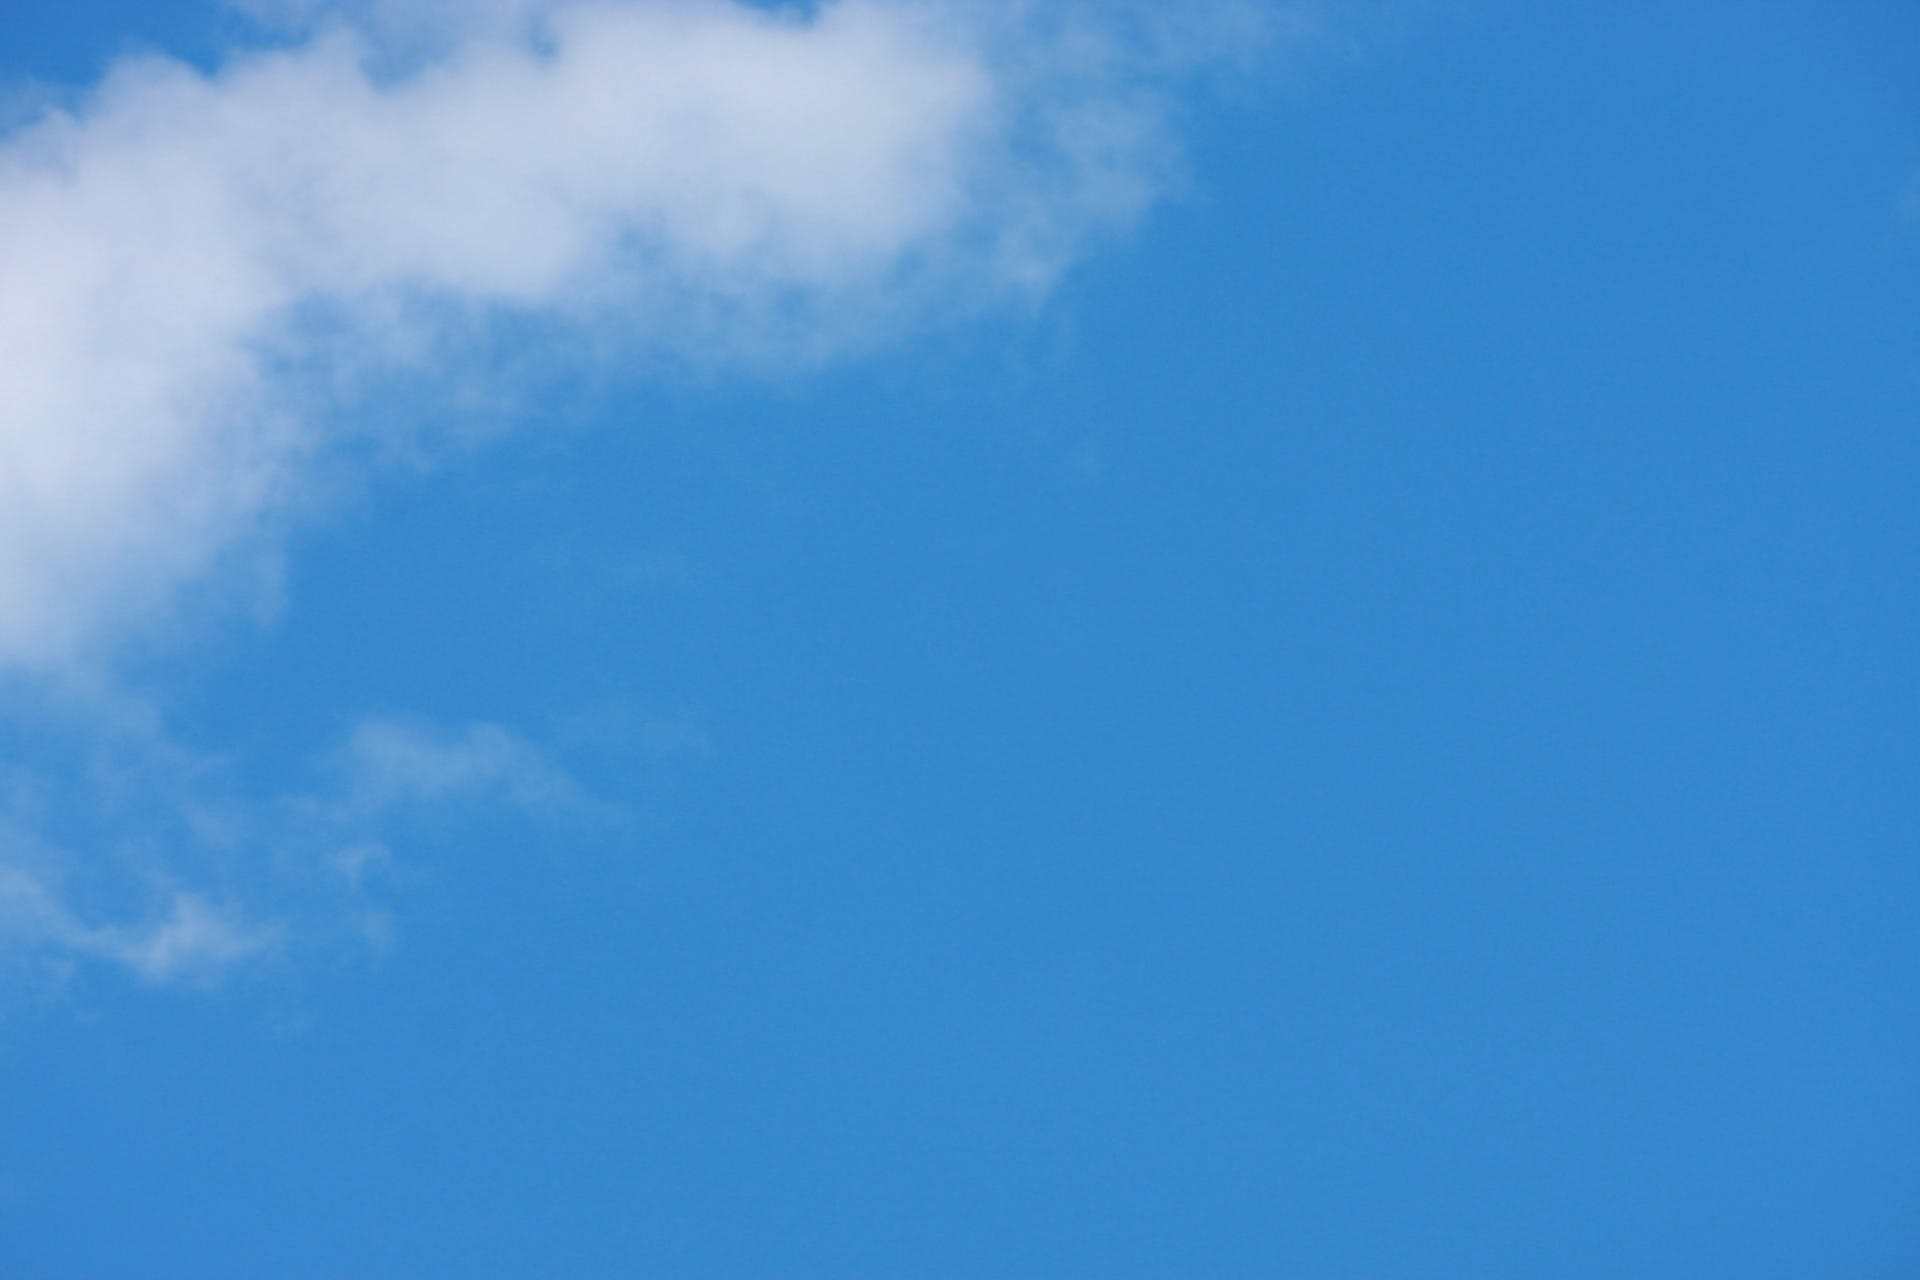 Physics: Why is the sky blue?